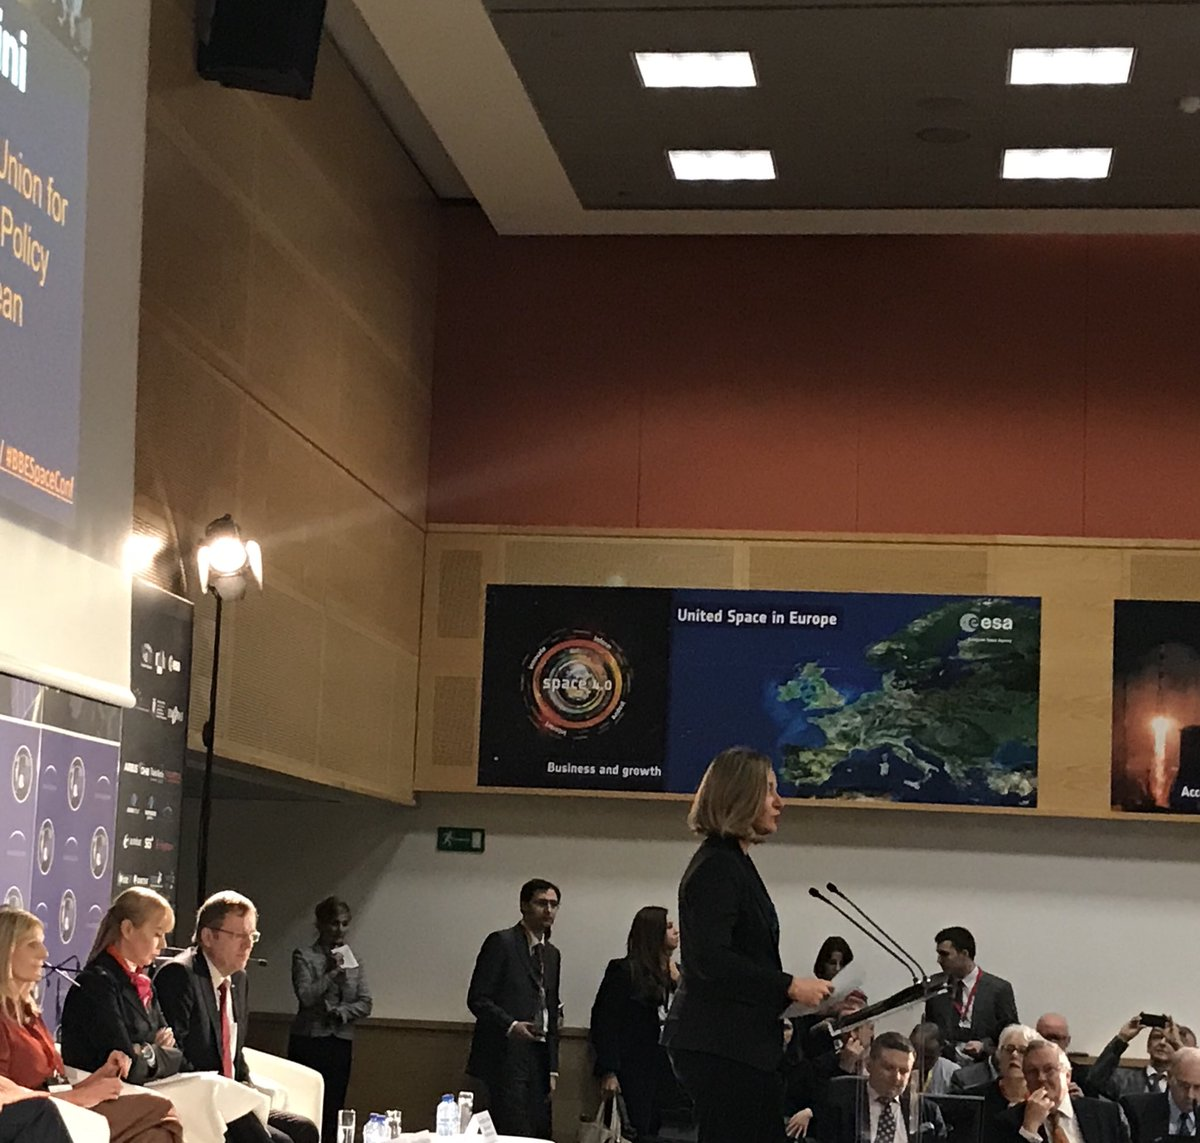 test Twitter Media - #BBESpaceConf @FedericaMog #EU has the second largest budget for space in the world. We can be the space power the world needs: innovative, autonomous, always seeking cooperation to the benefit of our citizens, our industry and our partners in the world https://t.co/cKeaoSGPw6